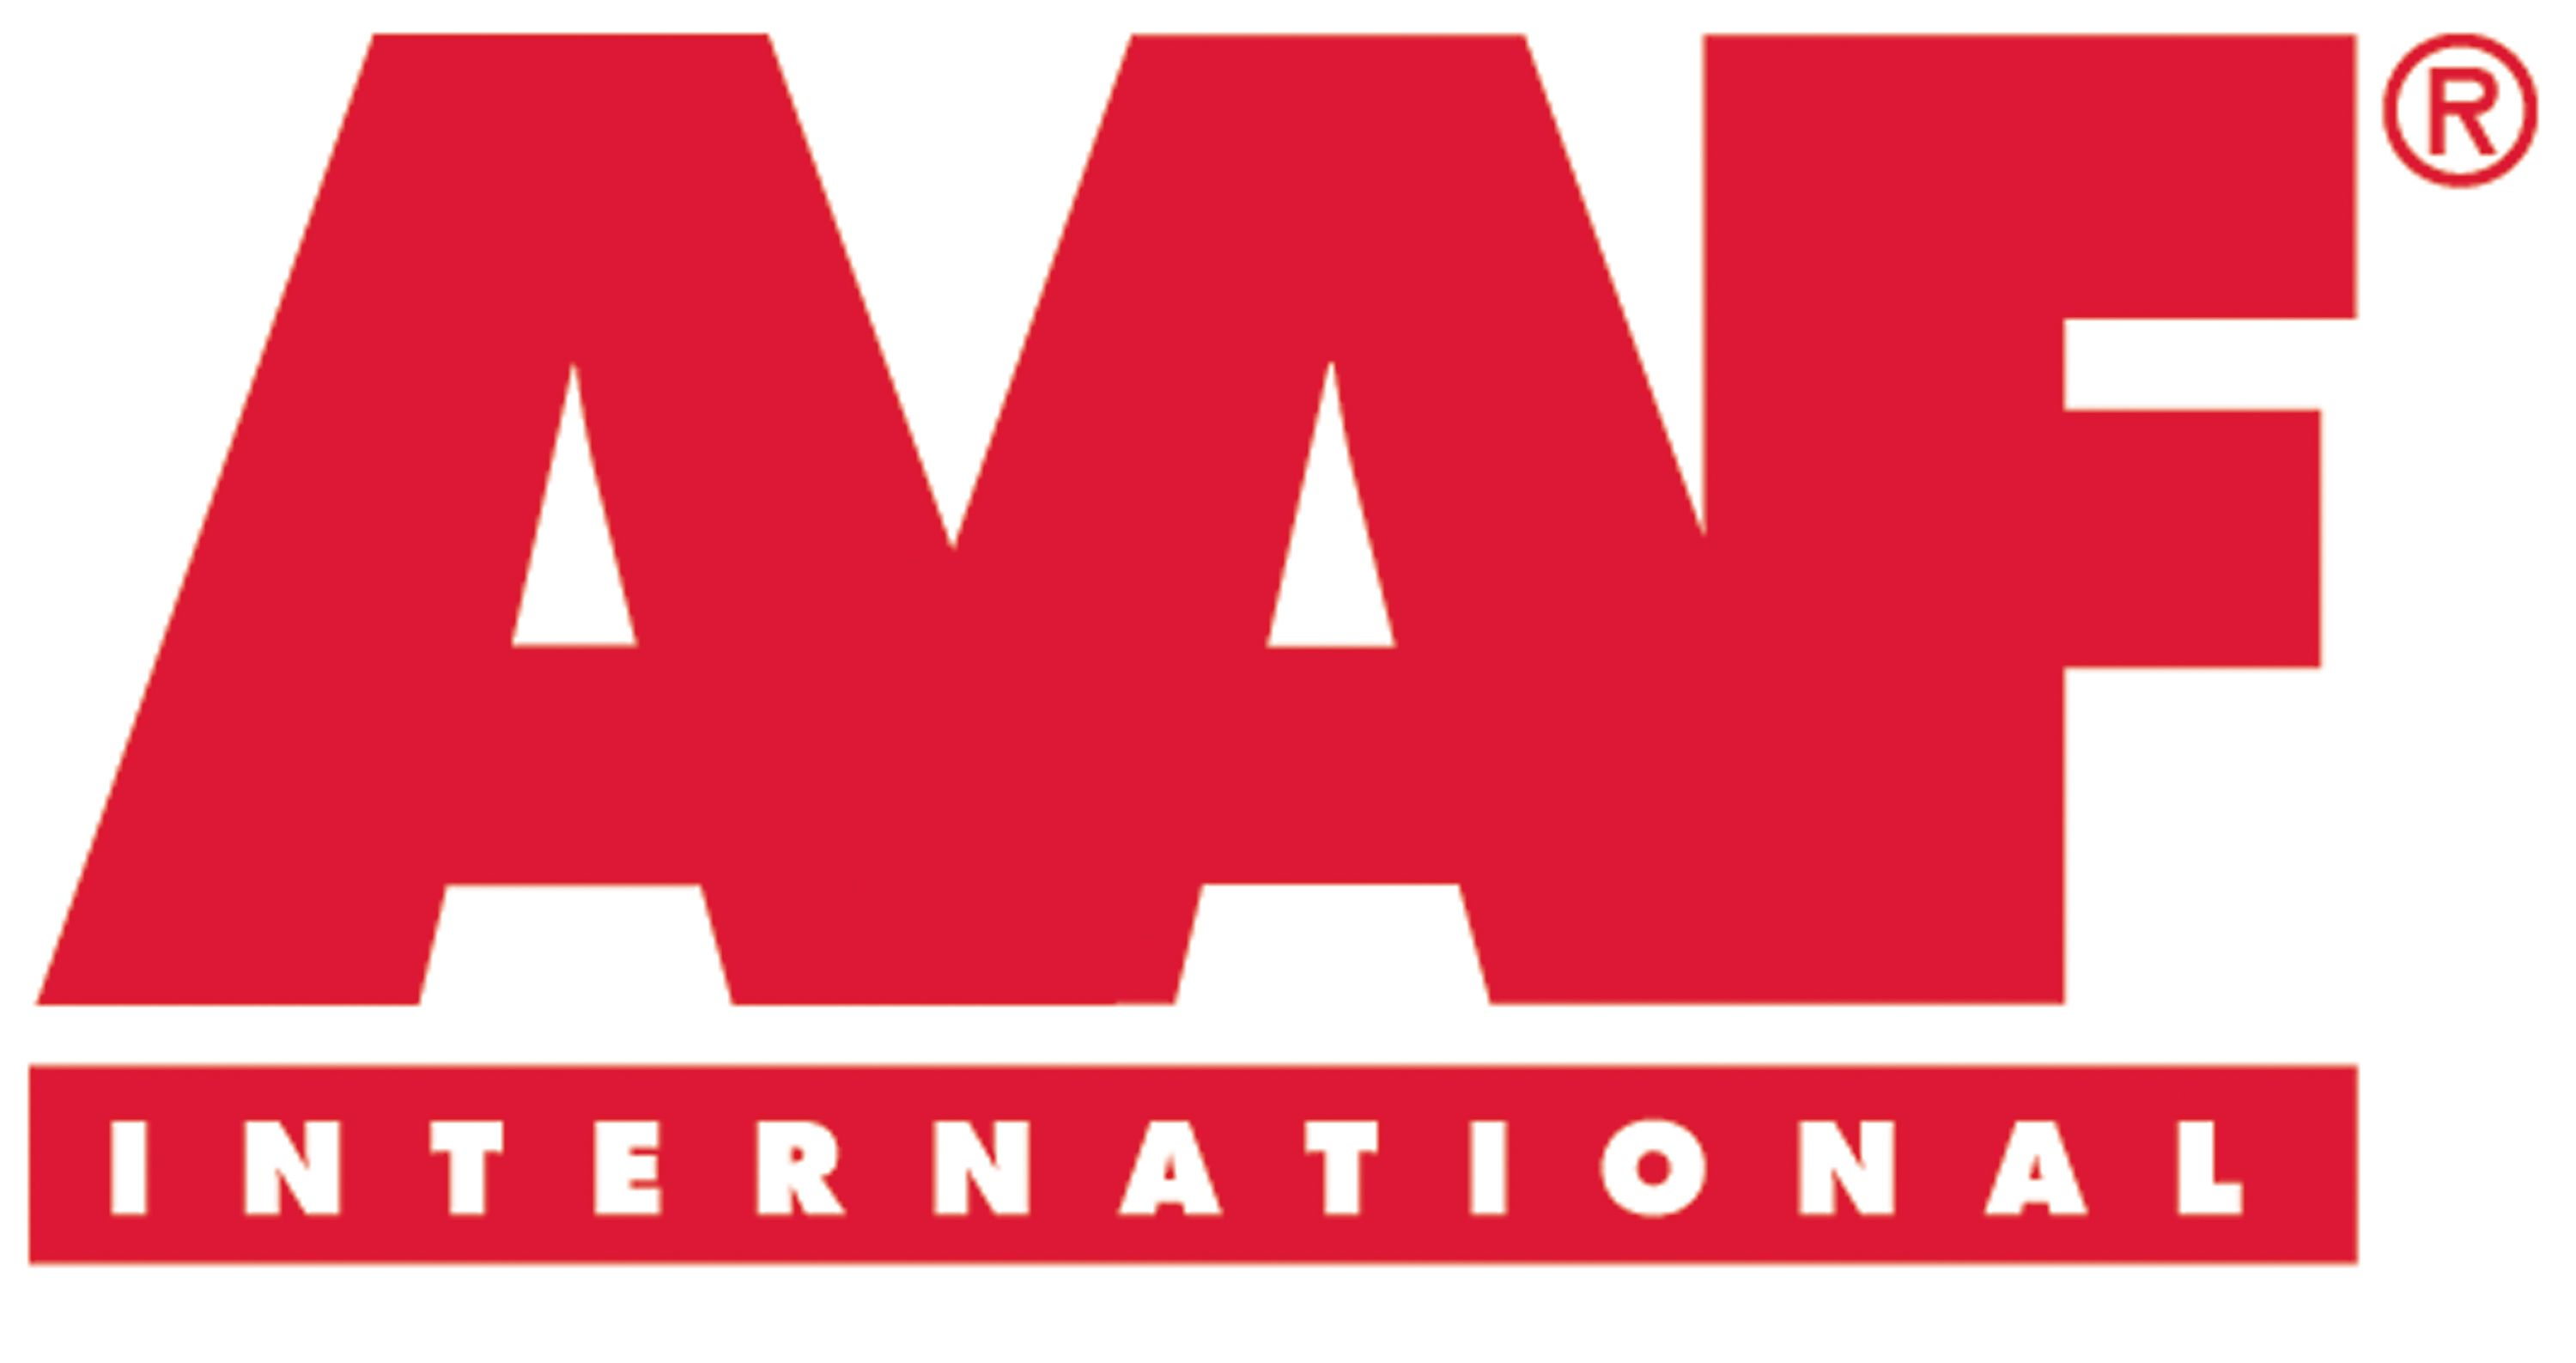 Aaf International Dépoussierage